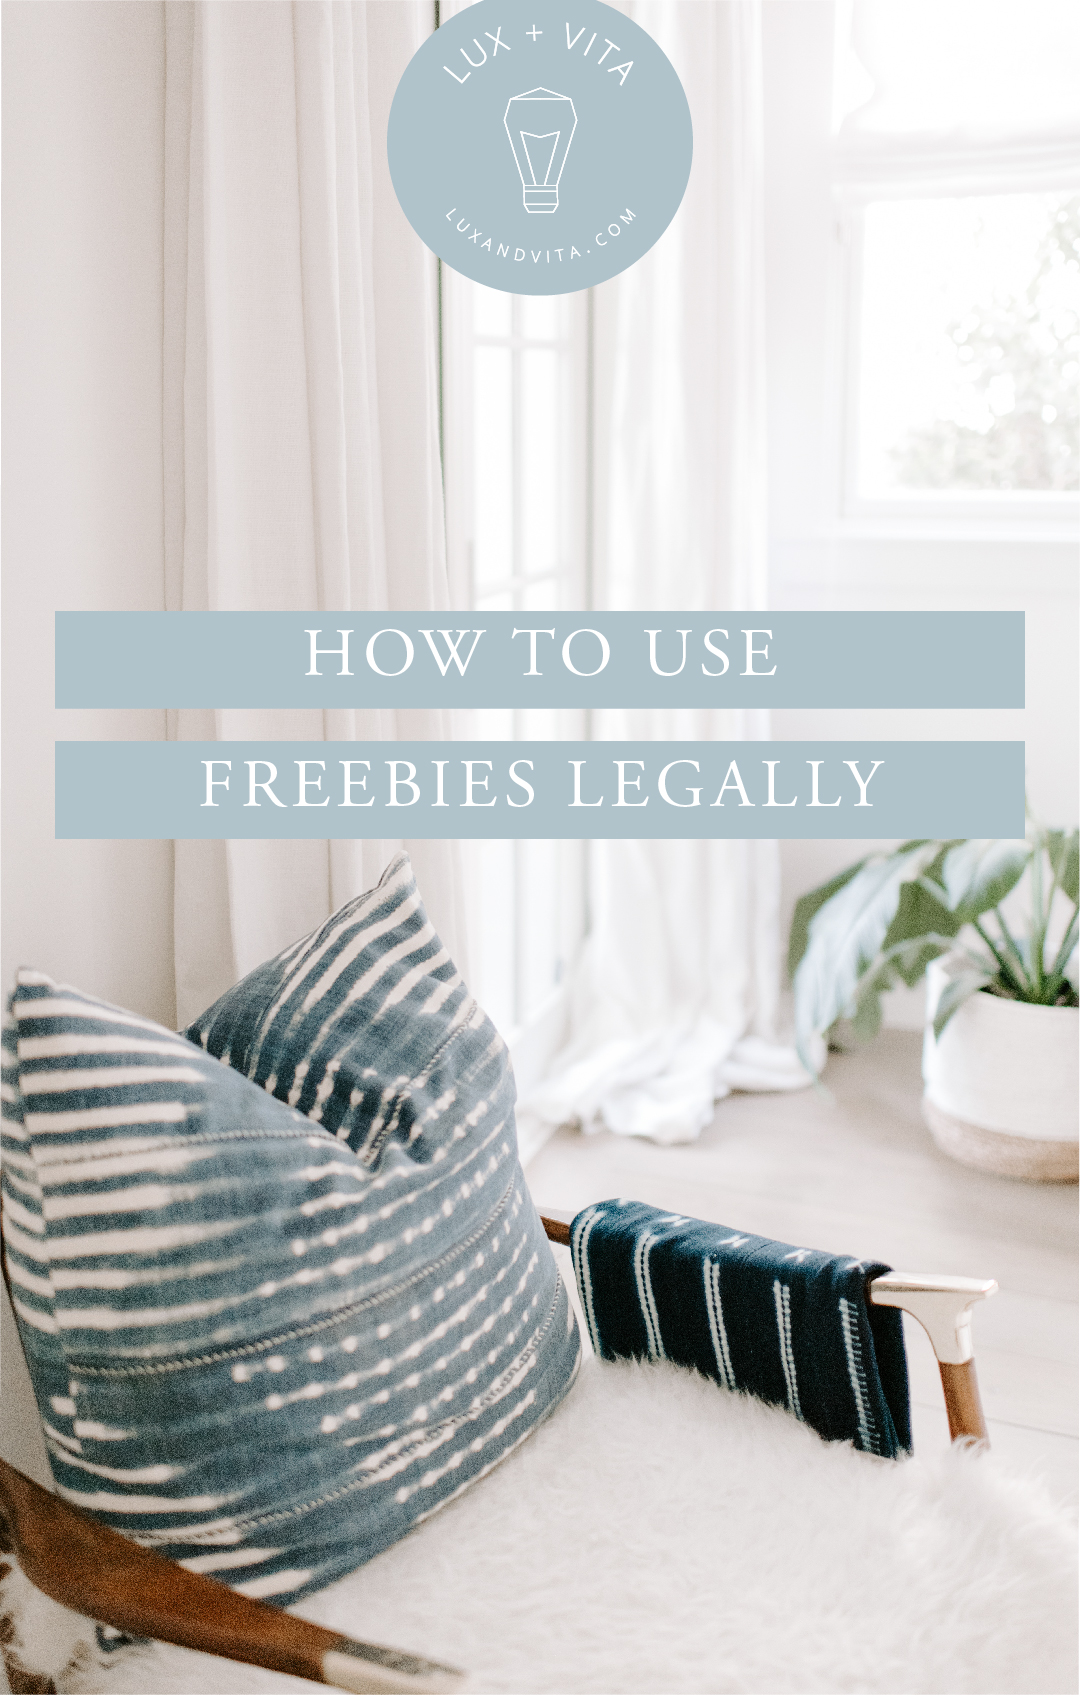 Blog-how-to-use-freebies-legally_Pinterest-Tall.jpg